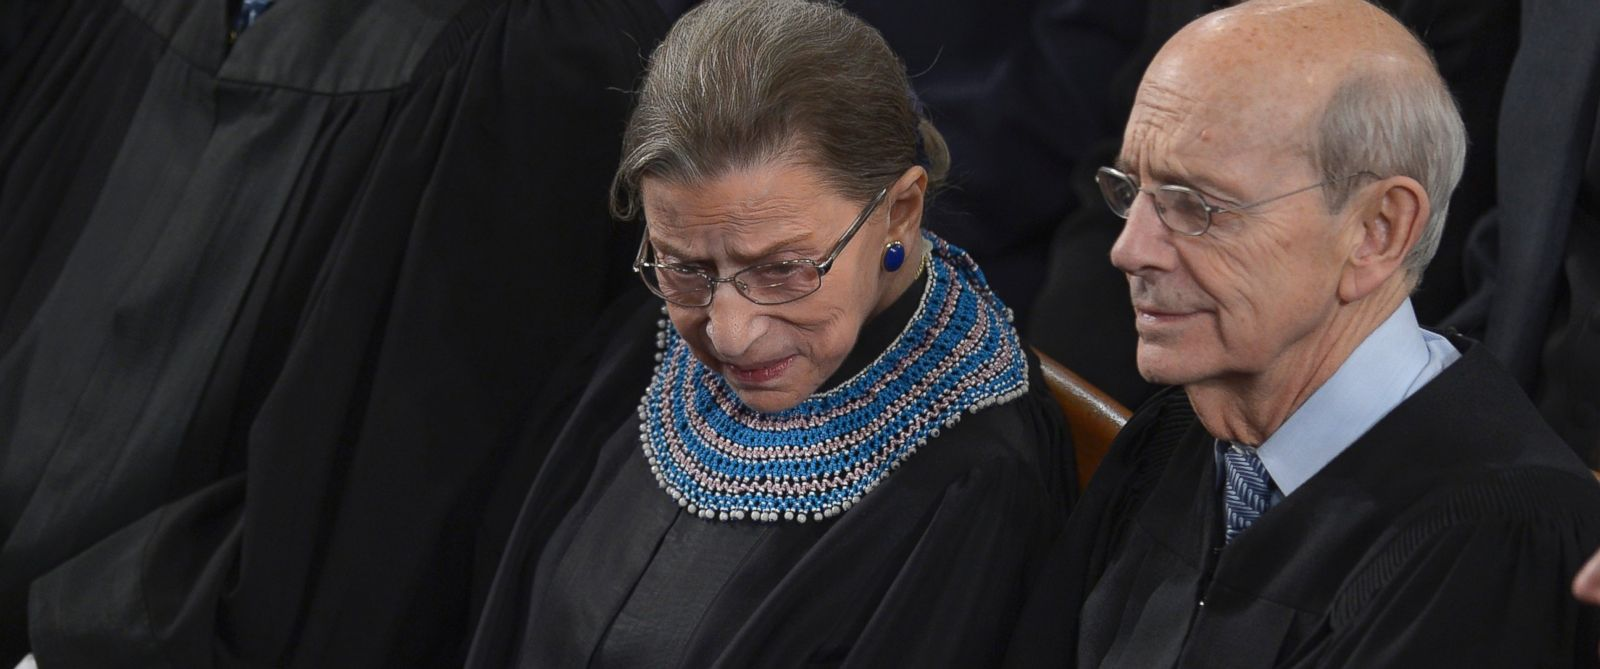 PHOTO: U.S. Supreme Court Justices Ruth Bader Ginsburg, left, and Stephen Breyer, right, listen as President Barack Obama delivers the State of the Union address before a joint session of Congress on Jan. 28, 2014 at the U.S. Capitol in Washington, D.C.